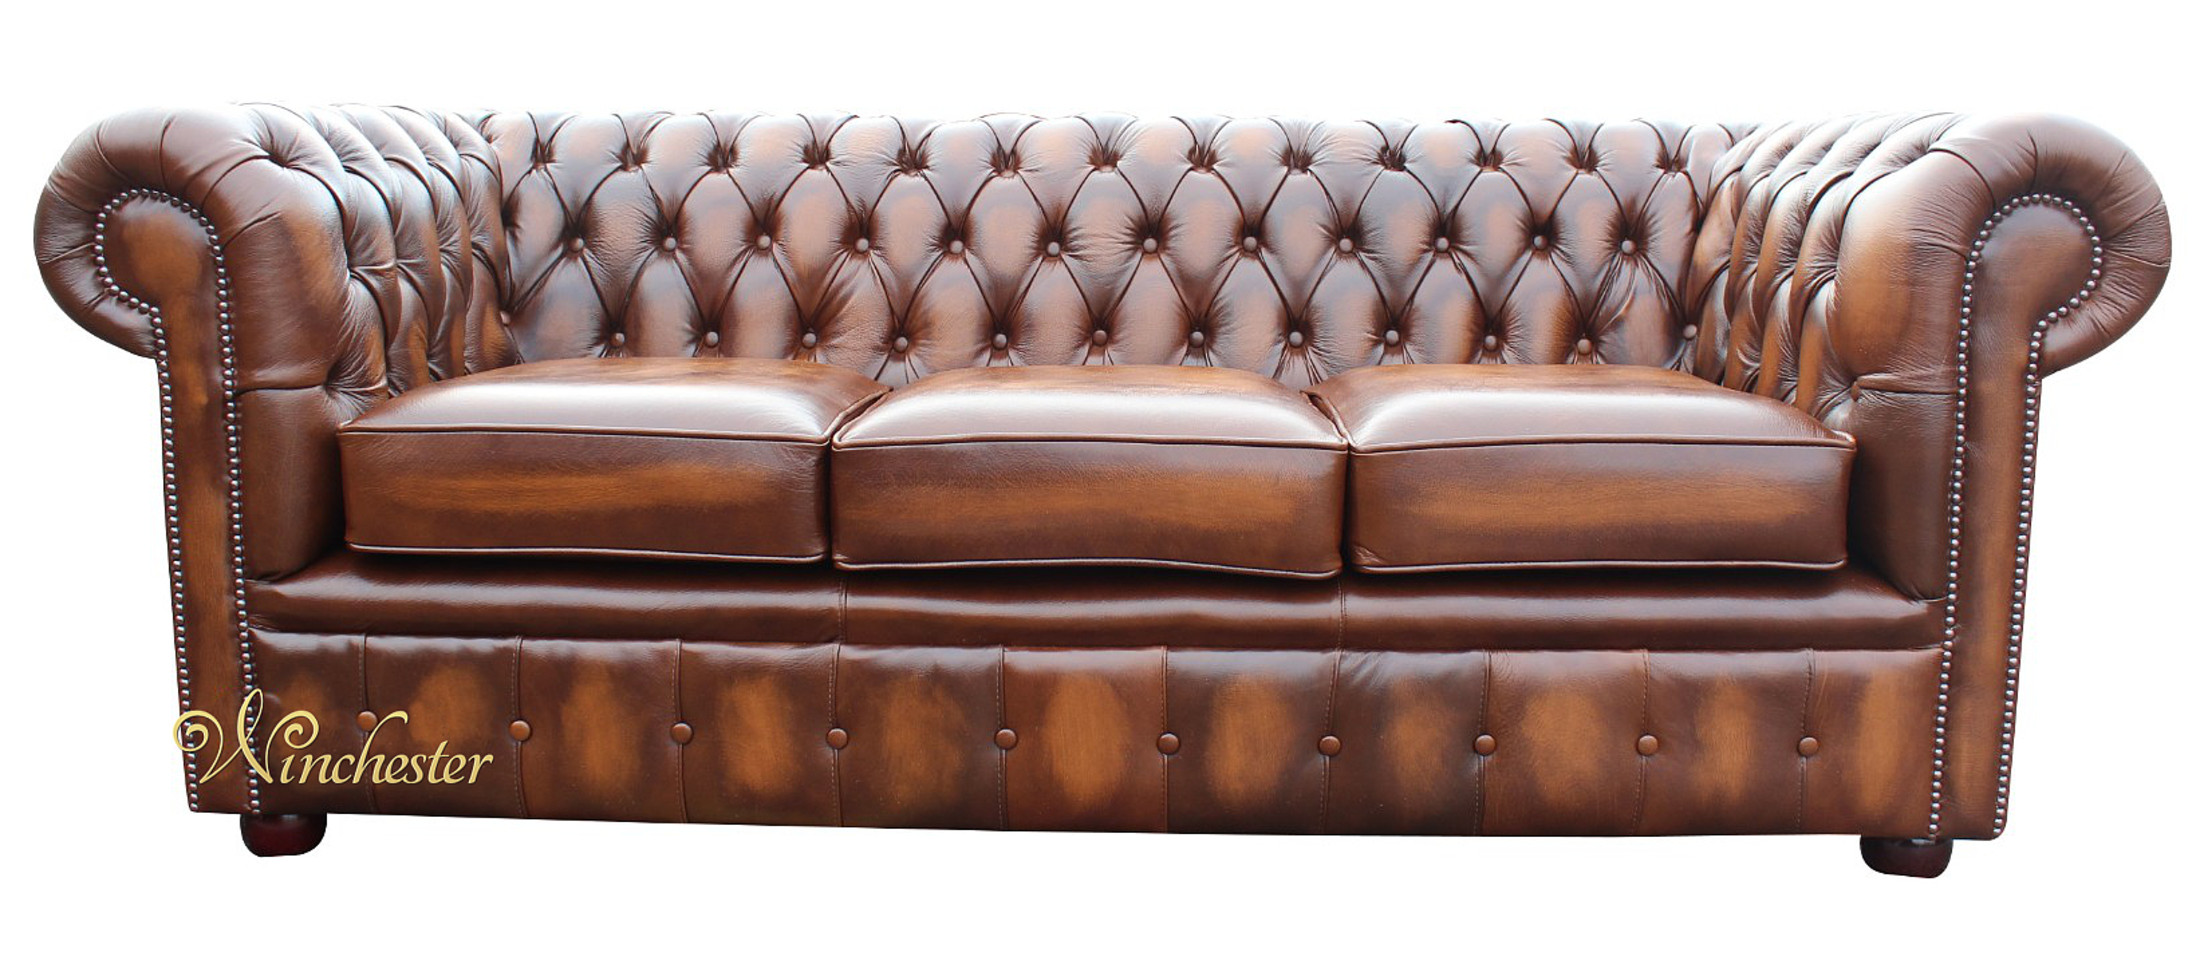 Chesterfield London 3 Seater Antique Tan Leather Sofa Settee